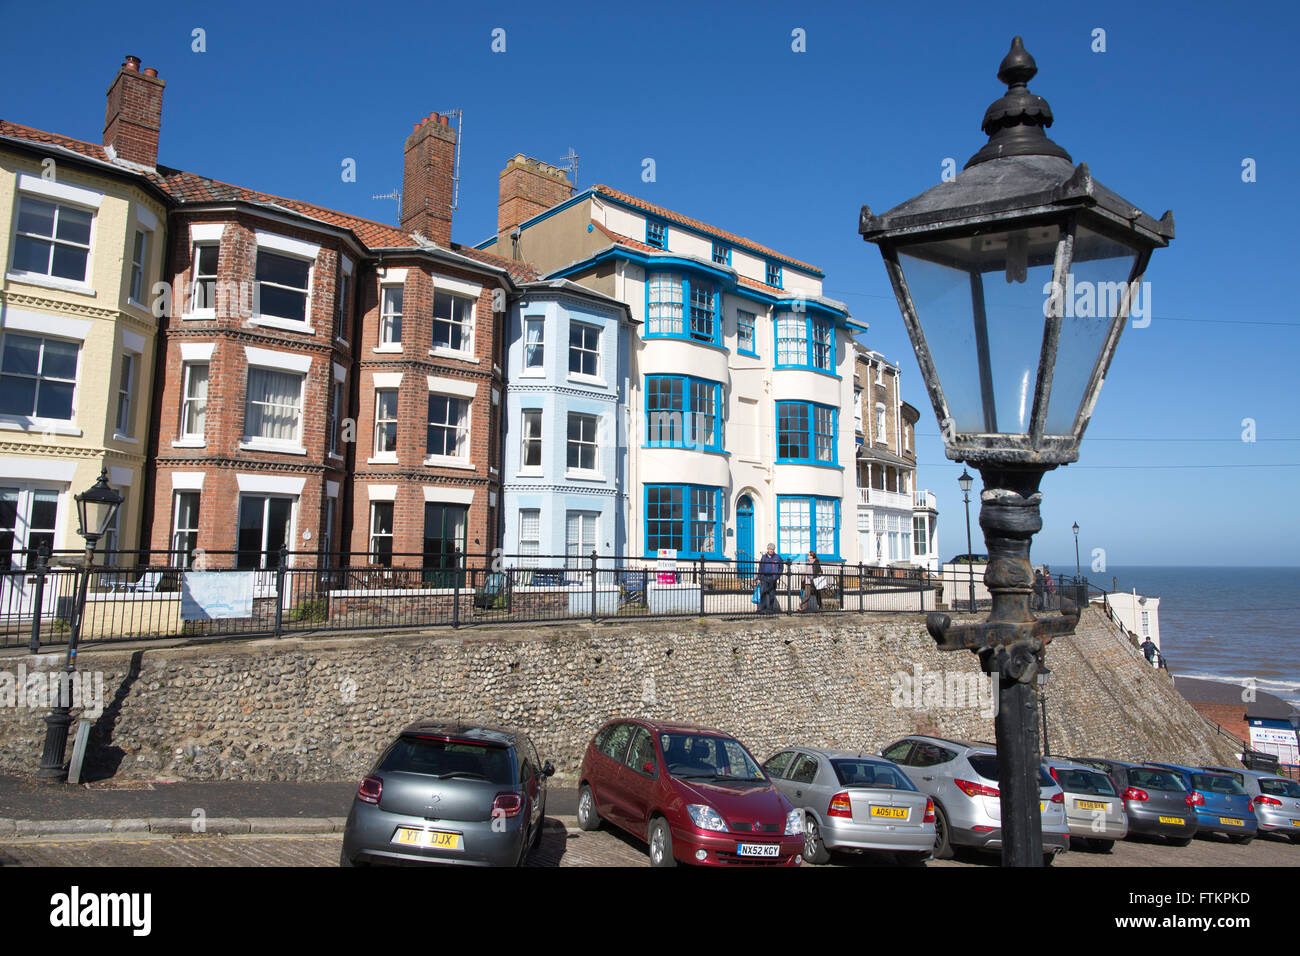 Guest houses on the seafront at Cromer, Norfolk coastal town, East Anglia, England, United Kingdom - Stock Image